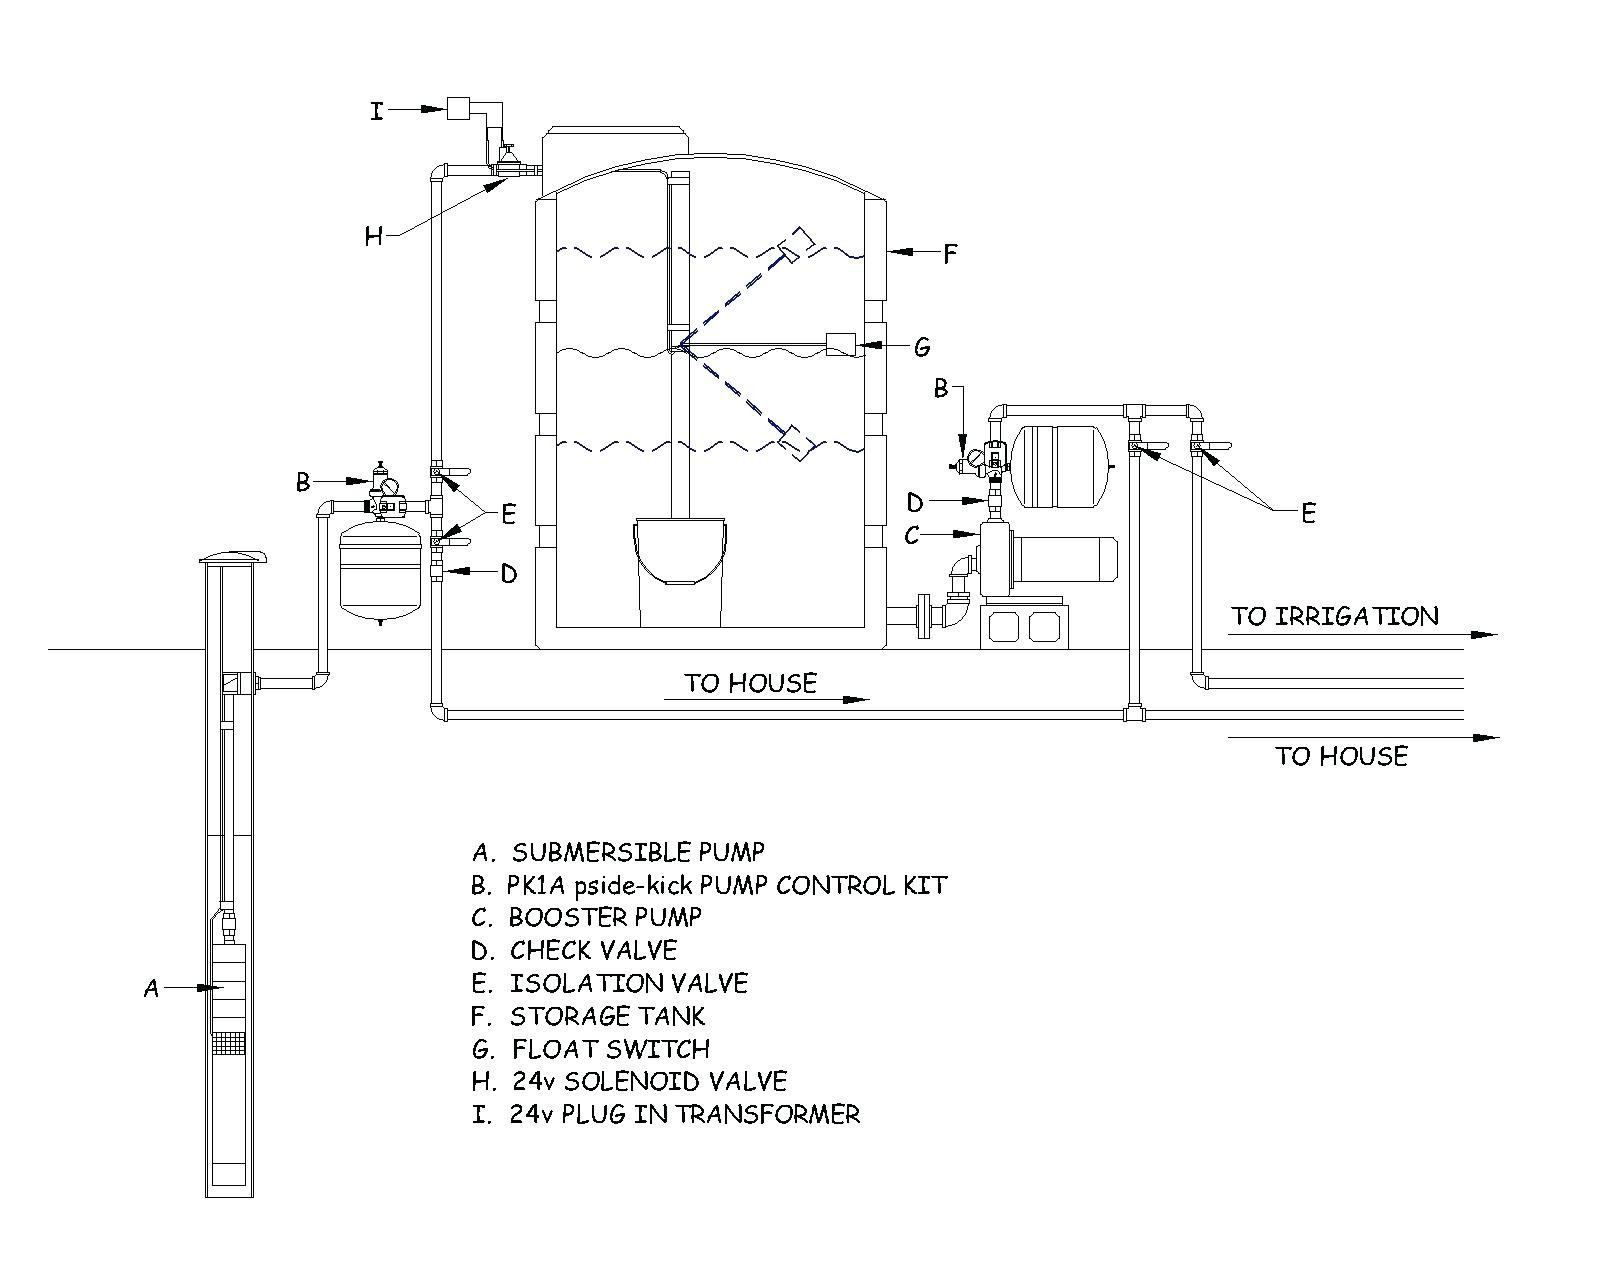 Full Size of Water Pressure Switch Wiring Diagram Well Pump Archived Wiring Diagram Category With